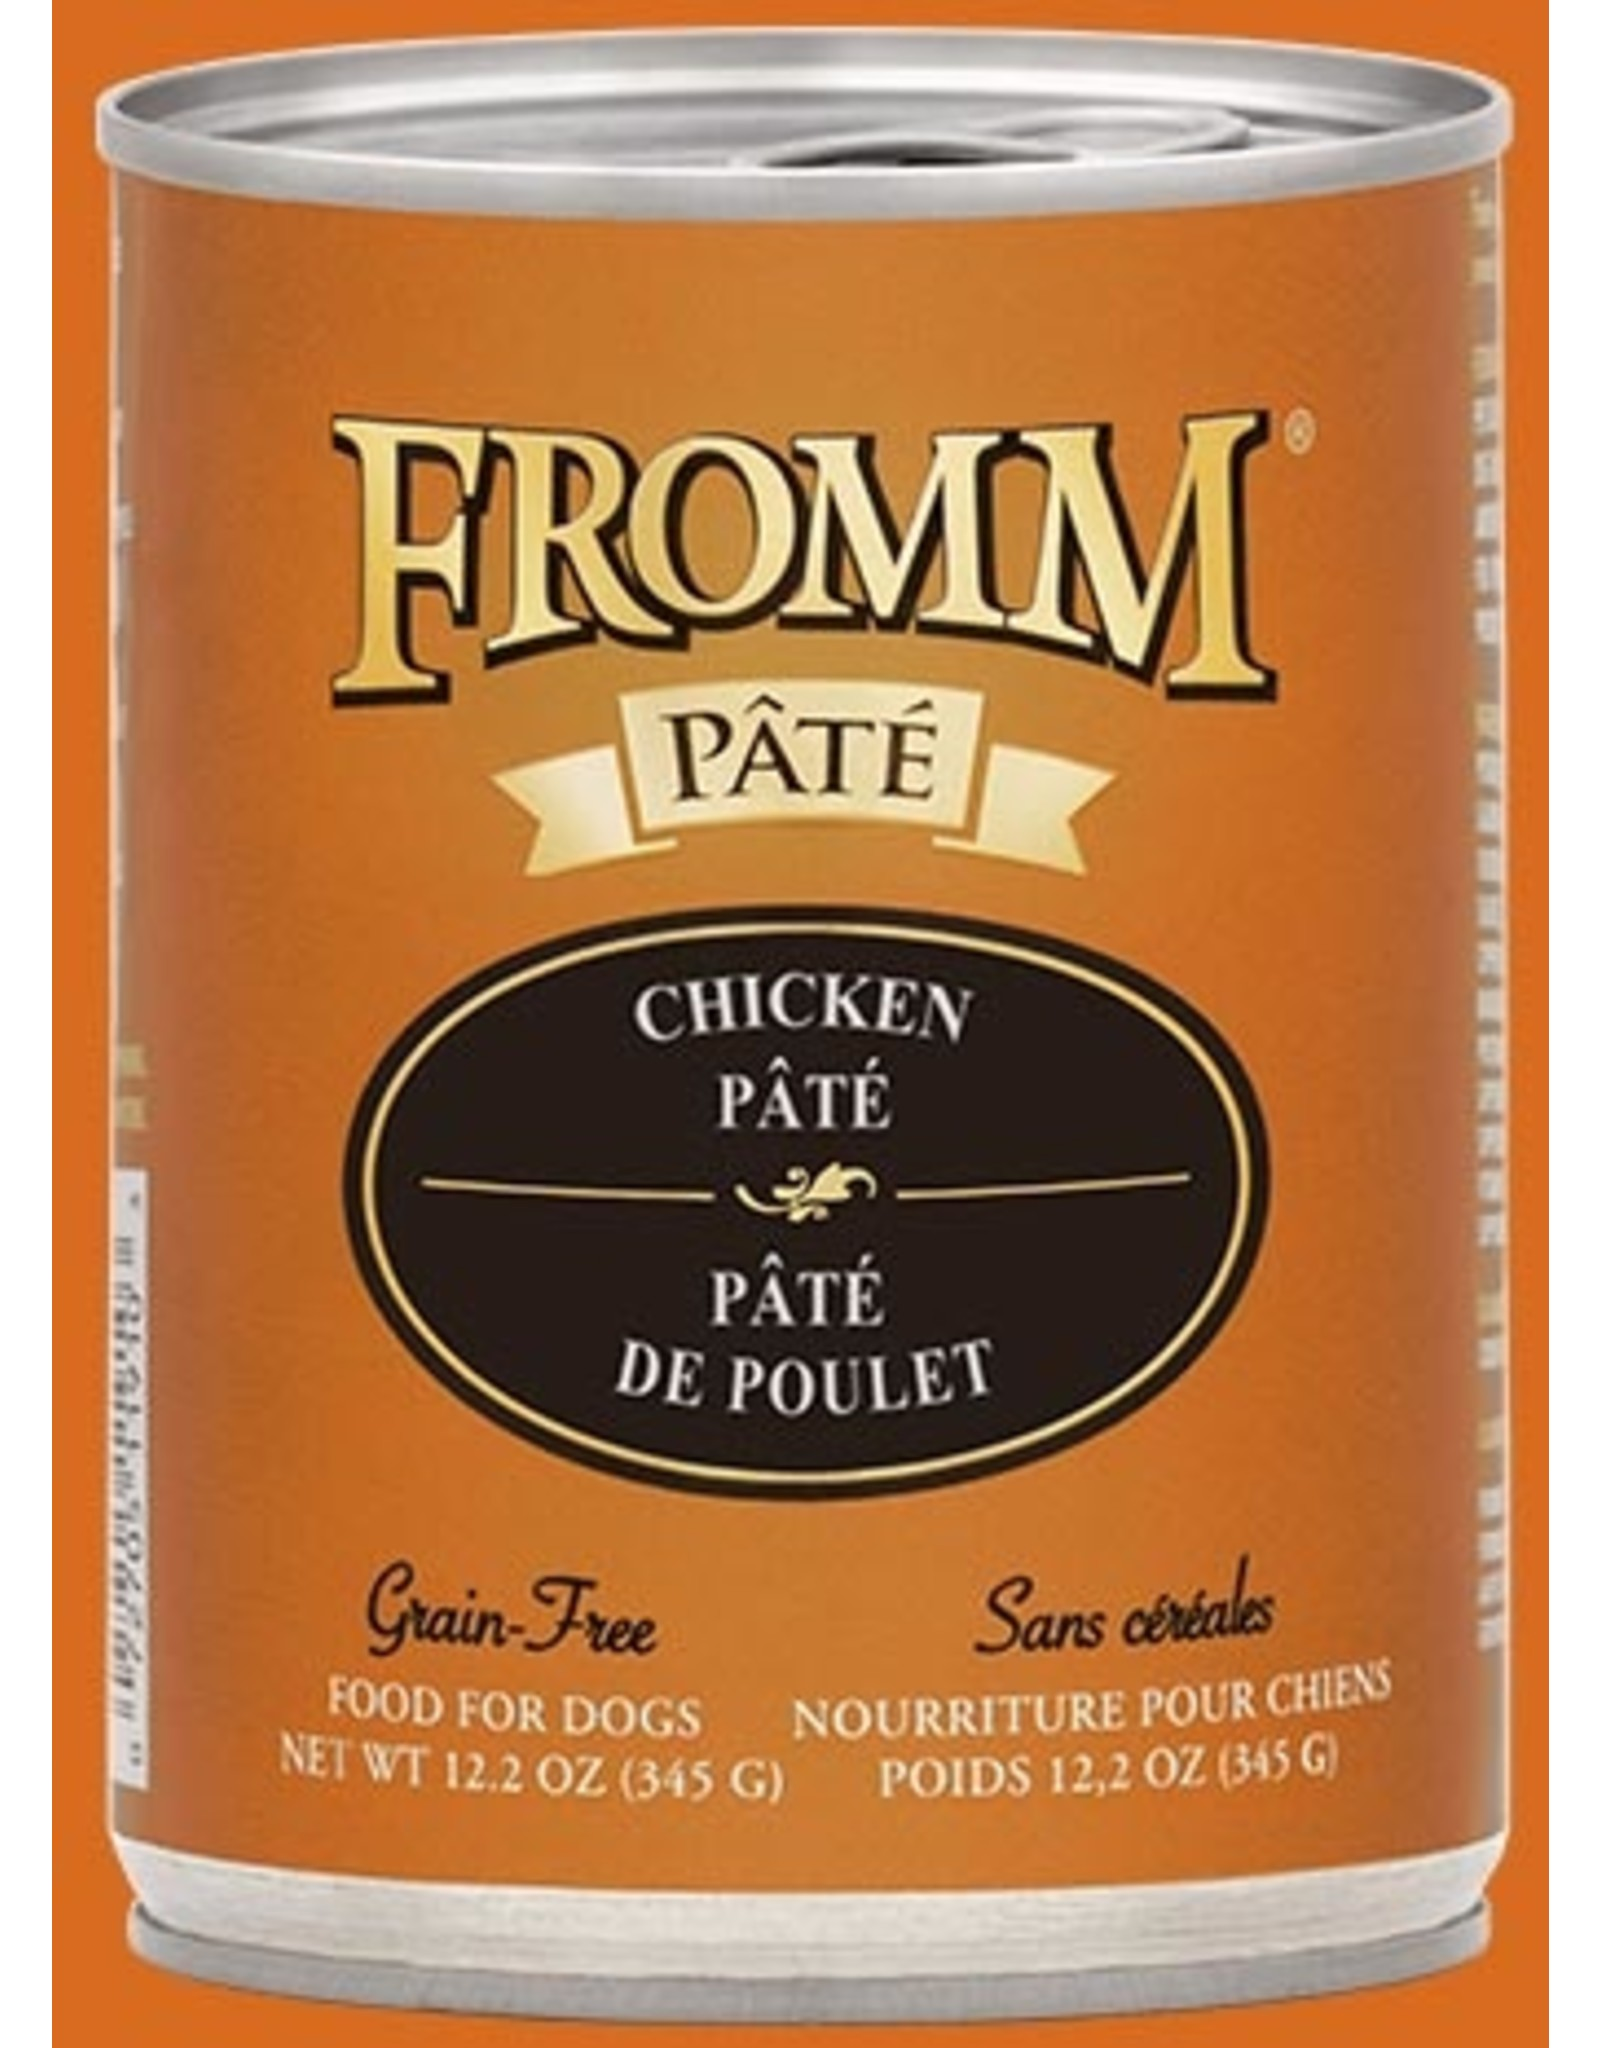 Fromm Fromm Wet Dog Food Chicken Pate 12.2oz Can Grain Free